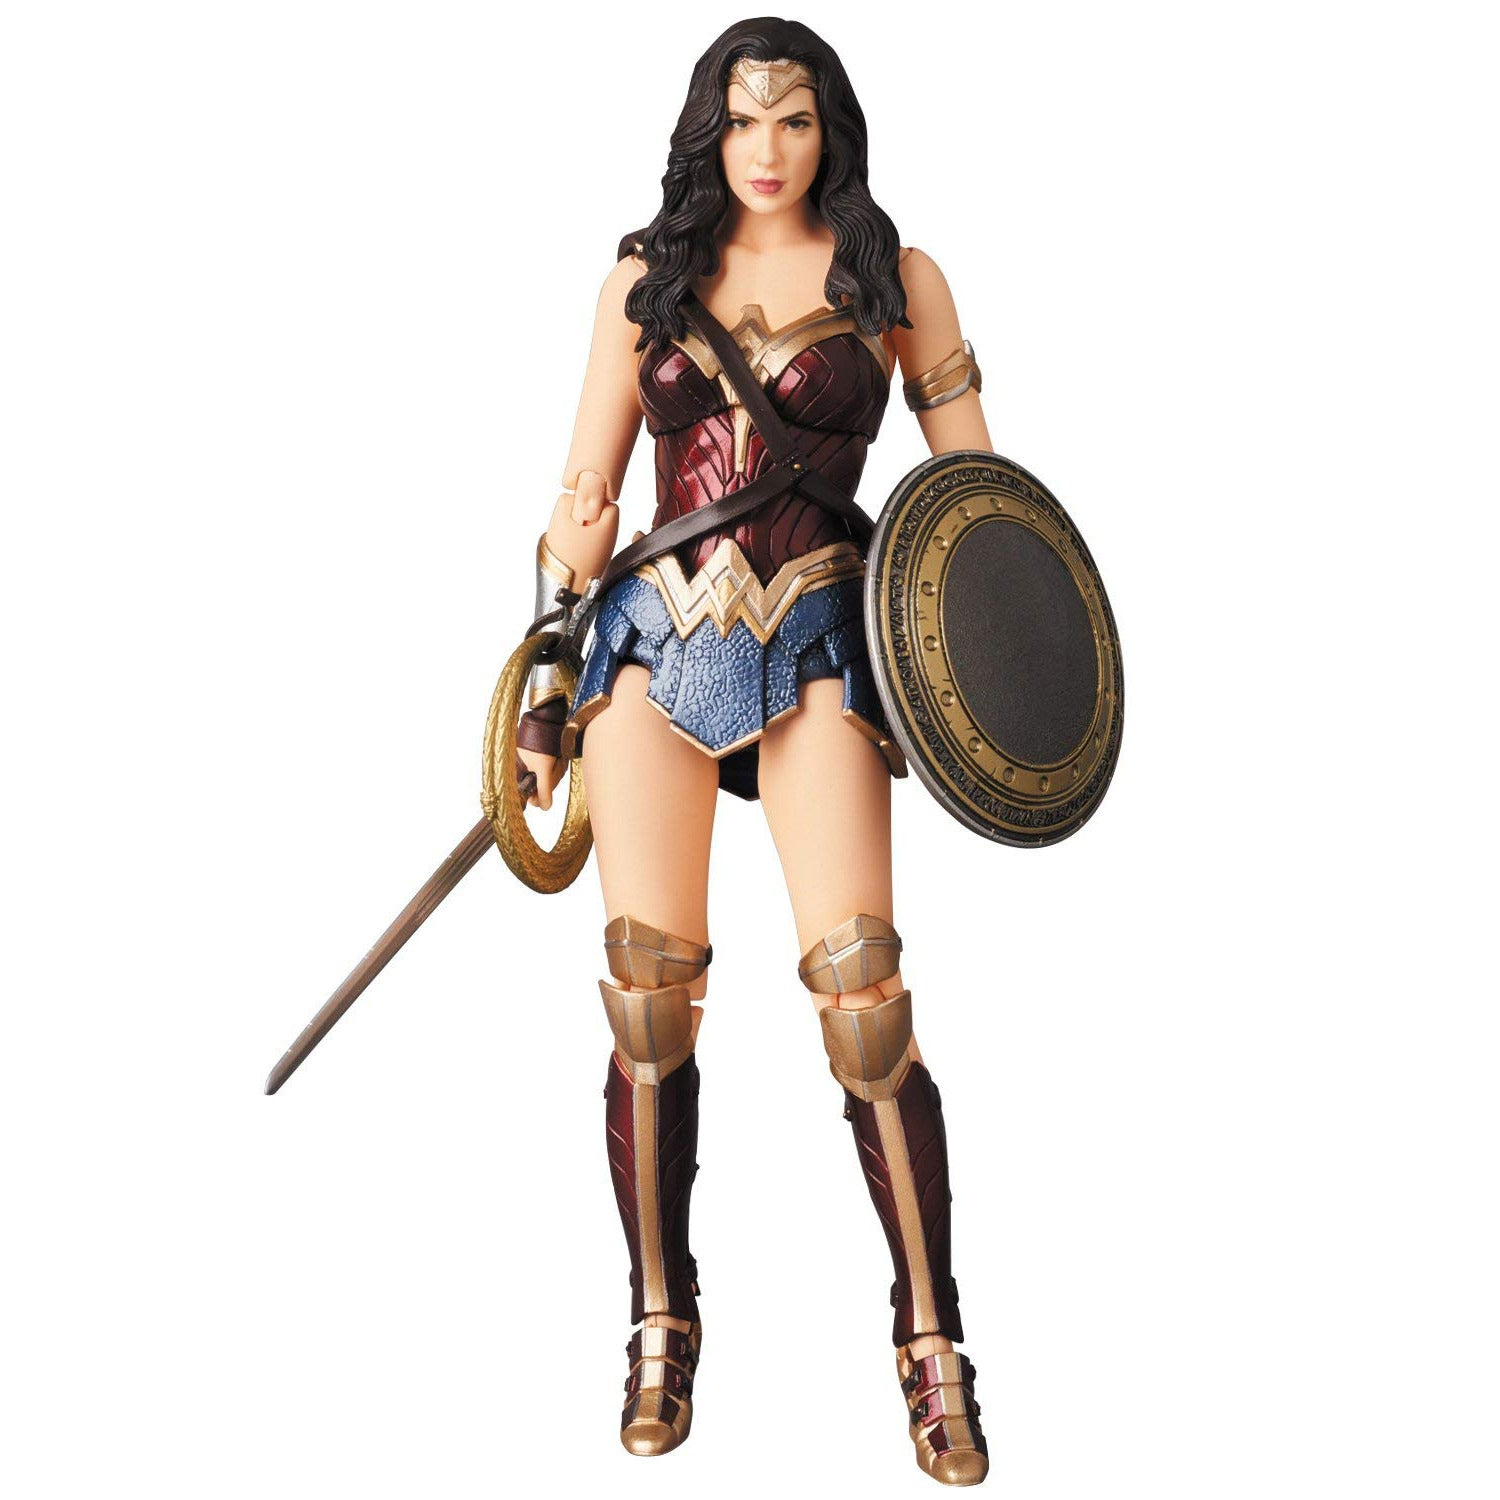 DC Comics Justice League Wonder Woman Mafex Action Figure